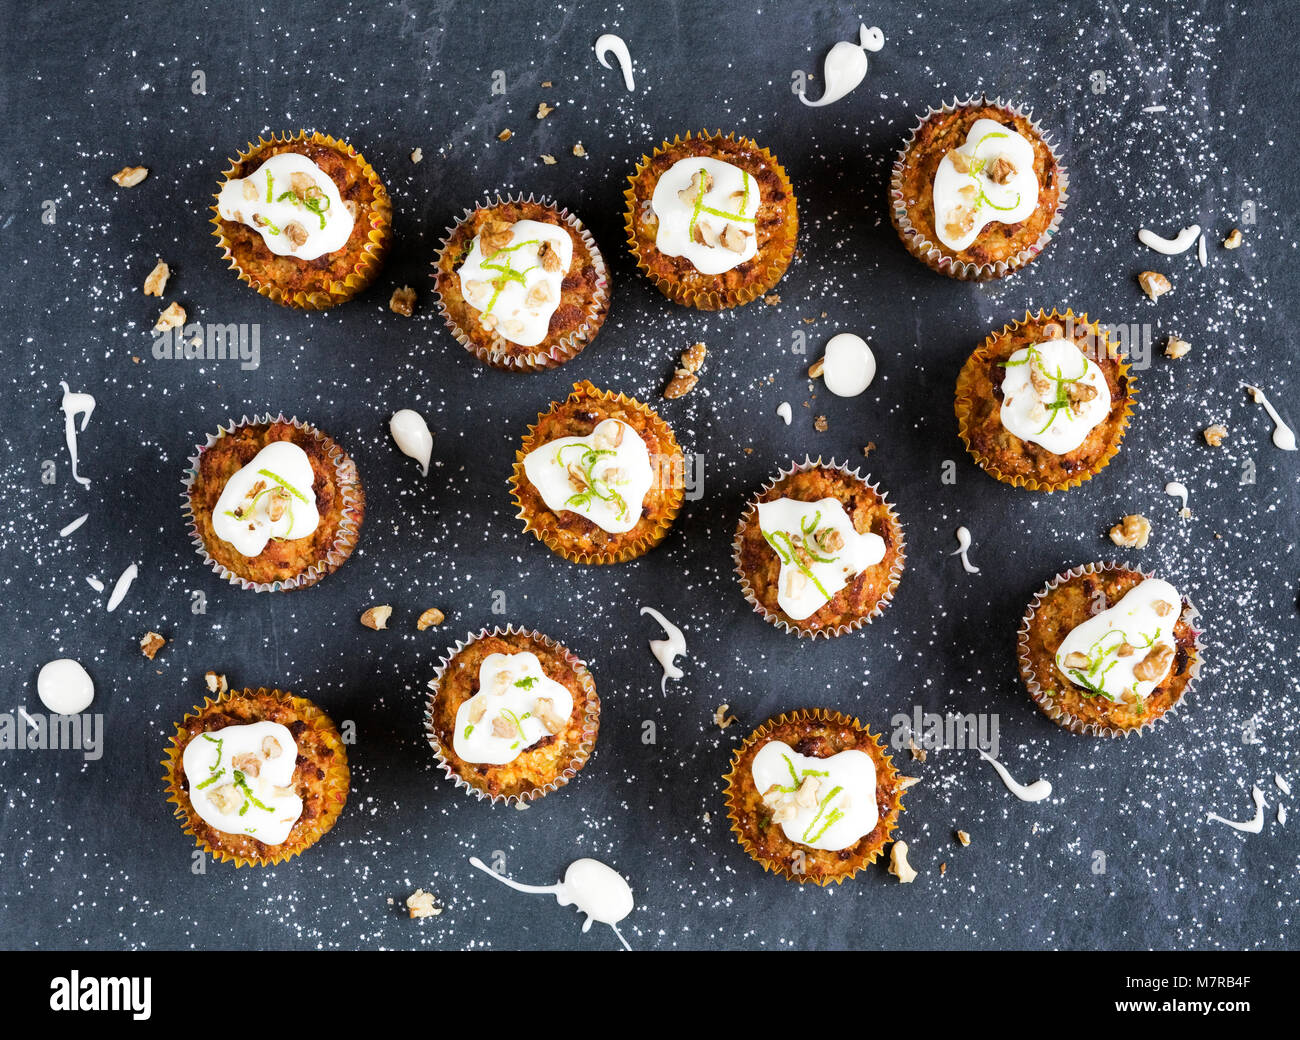 Homemade Carrot and Coconut Muffins. - Stock Image